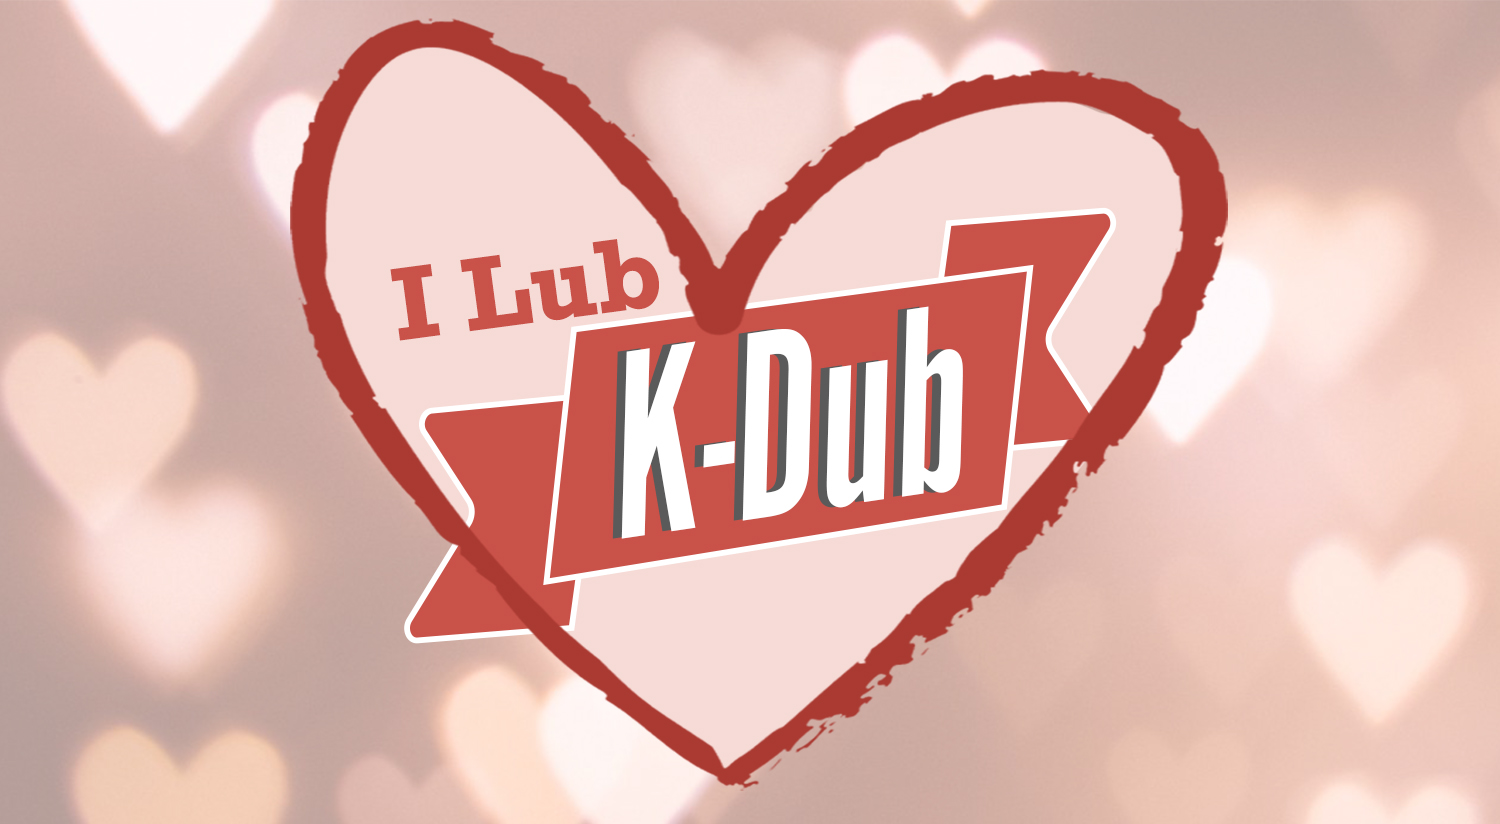 I Lub K-Dub: Celebrate Valentine's Day with KW